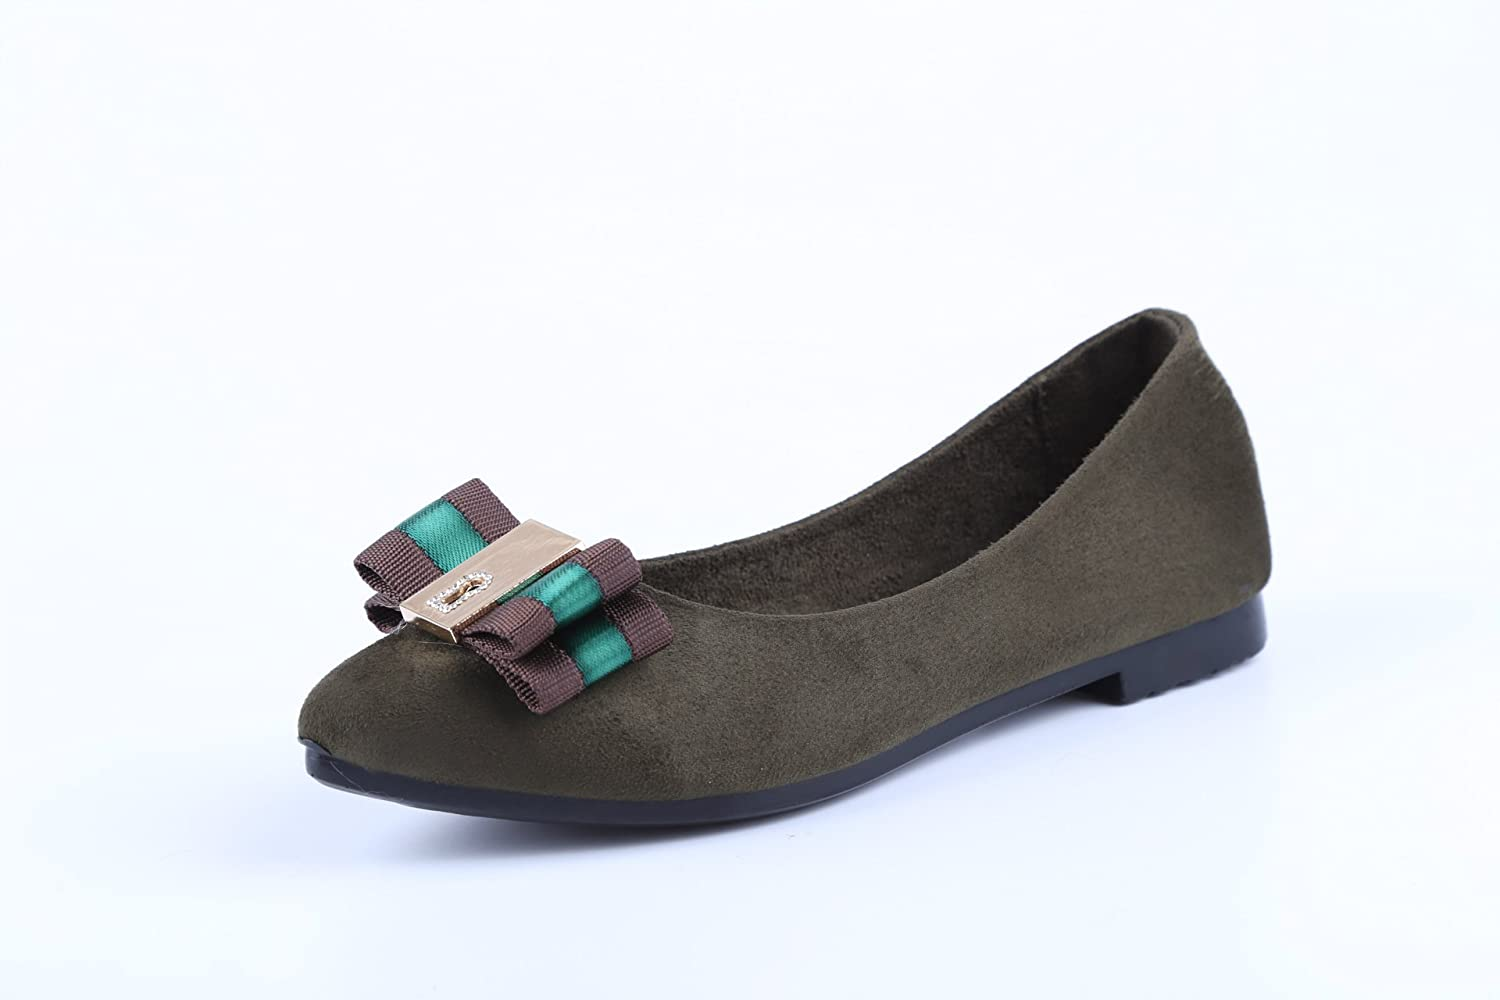 WHW Women shoes light port Single Twine Bow Knot ,green,37 shoes tips